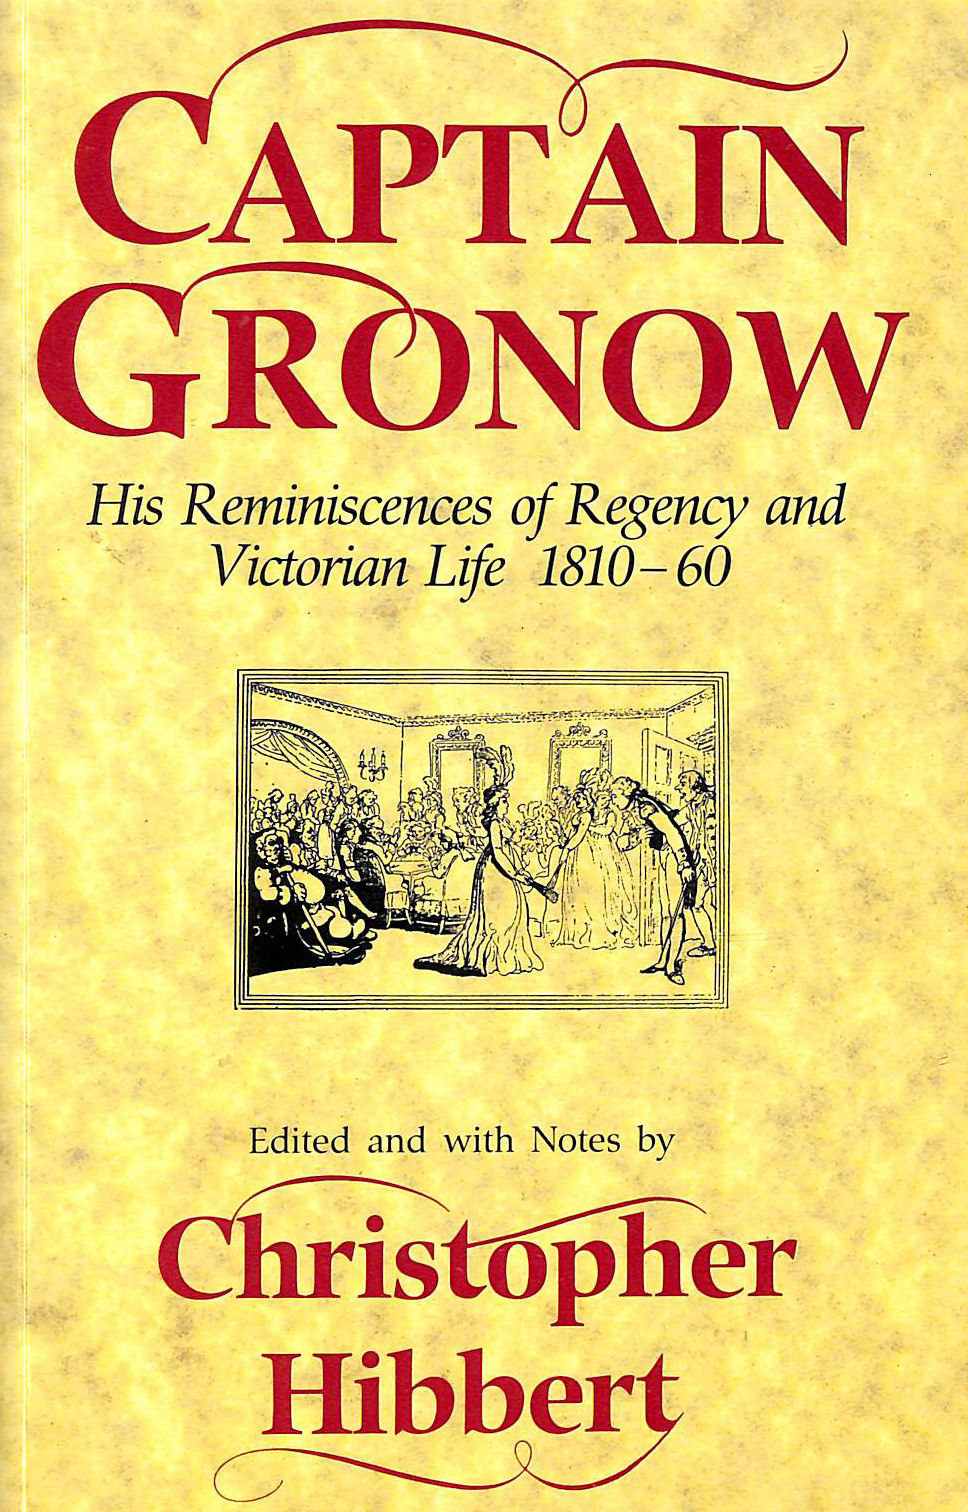 Image for Captain Gronow: His Reminiscences of Regency and Victorian Life, 1810-60